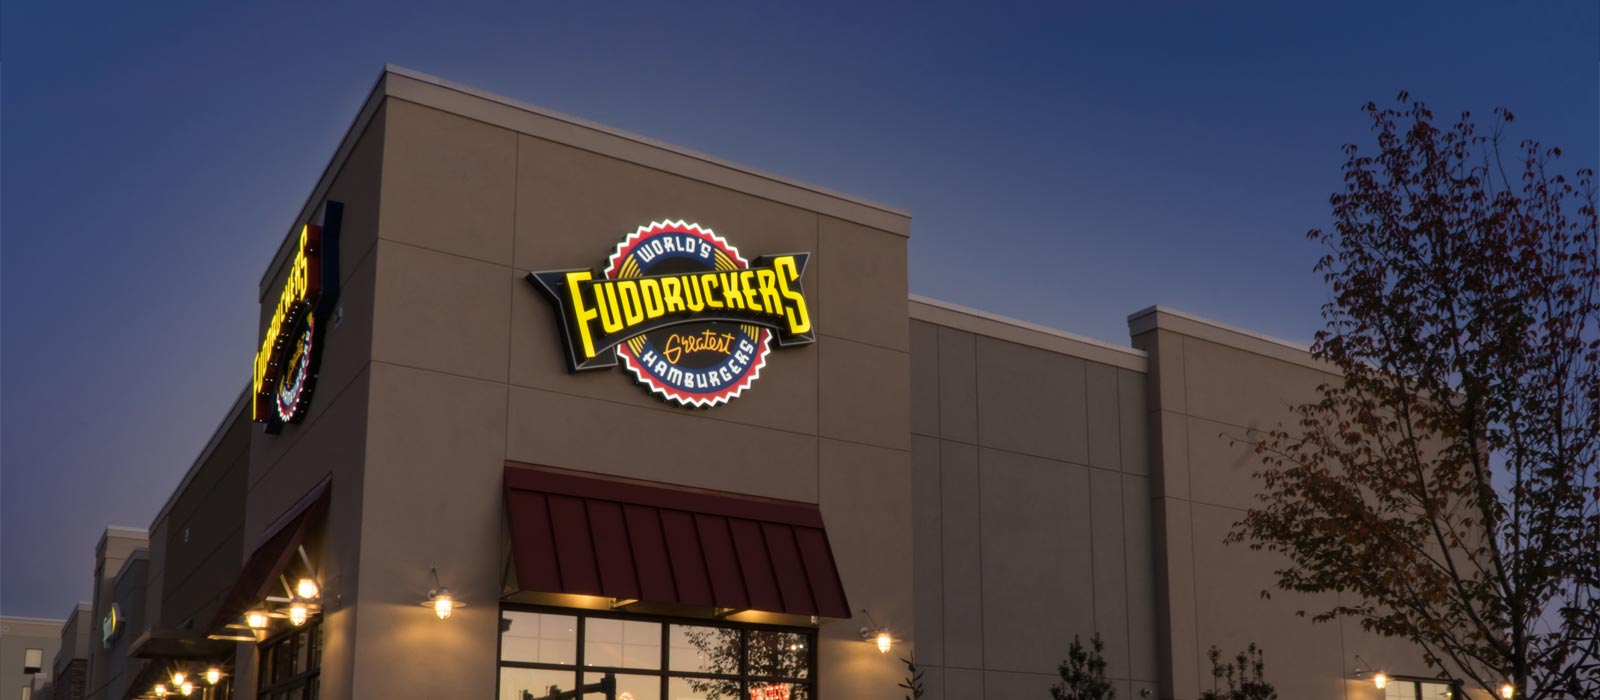 Horst Signs in PA Building Sign for Fuddruckers at Donegal Square Manheim PA